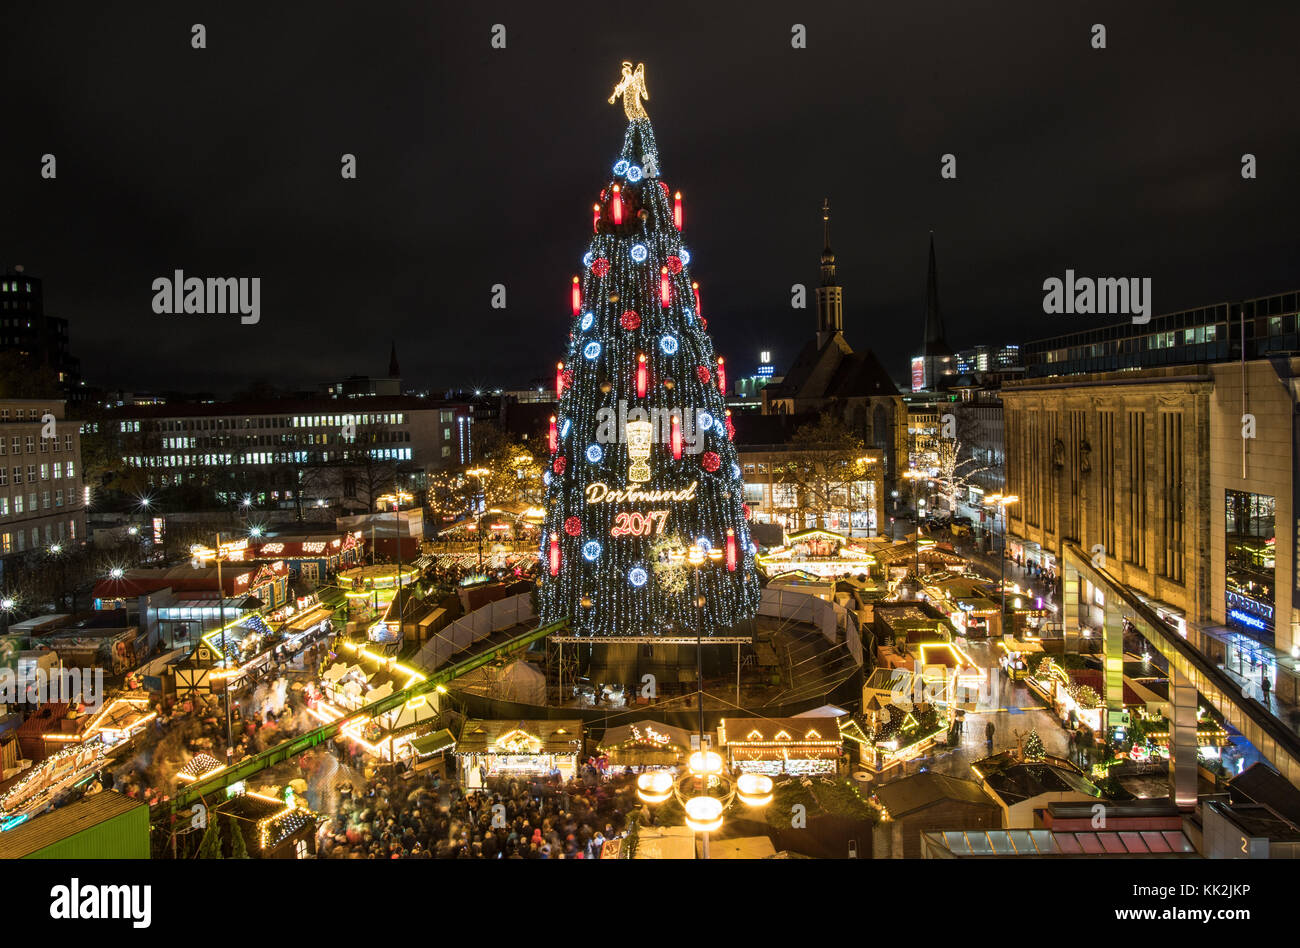 the worlds largest christmas tree according to the organizers shines brightly at the christmas - Worlds Largest Christmas Tree